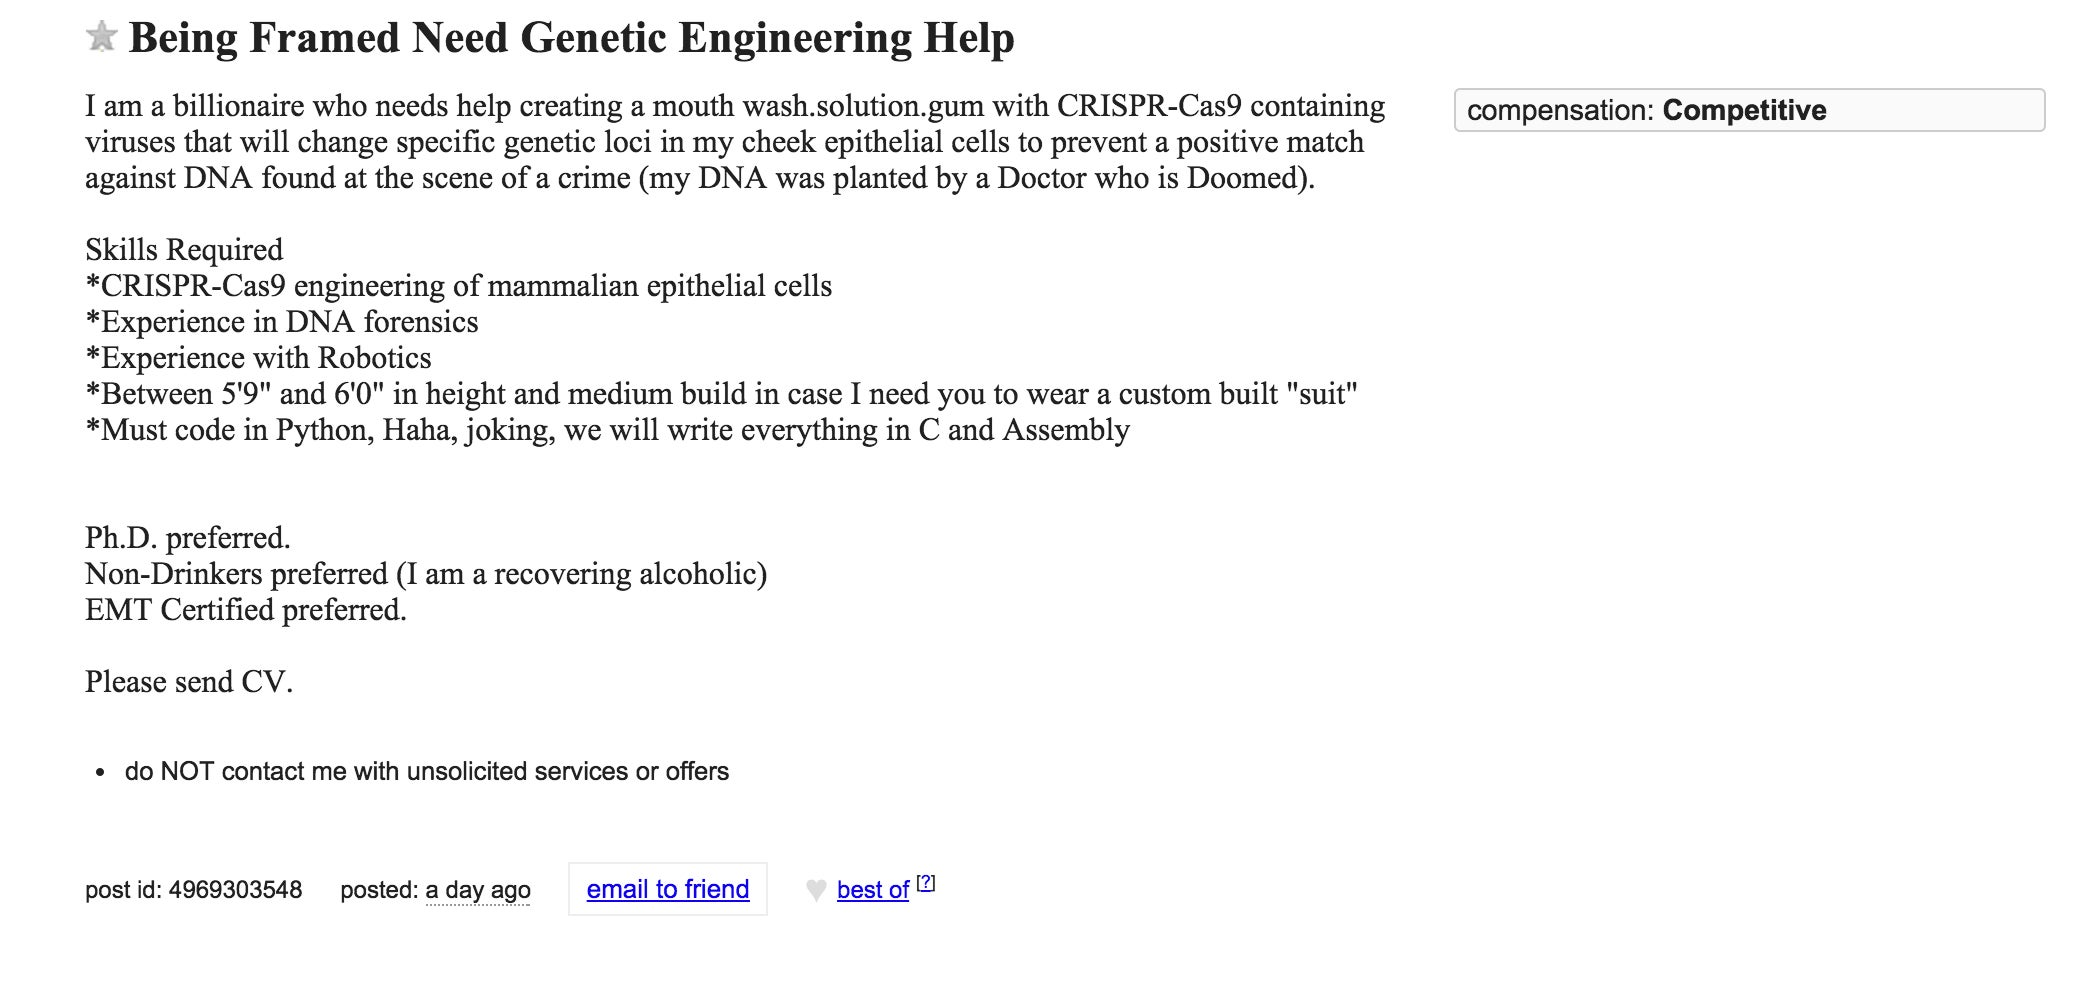 This Craigslist Ad for a Genetic Engineer Is Pure Wonderful Madness